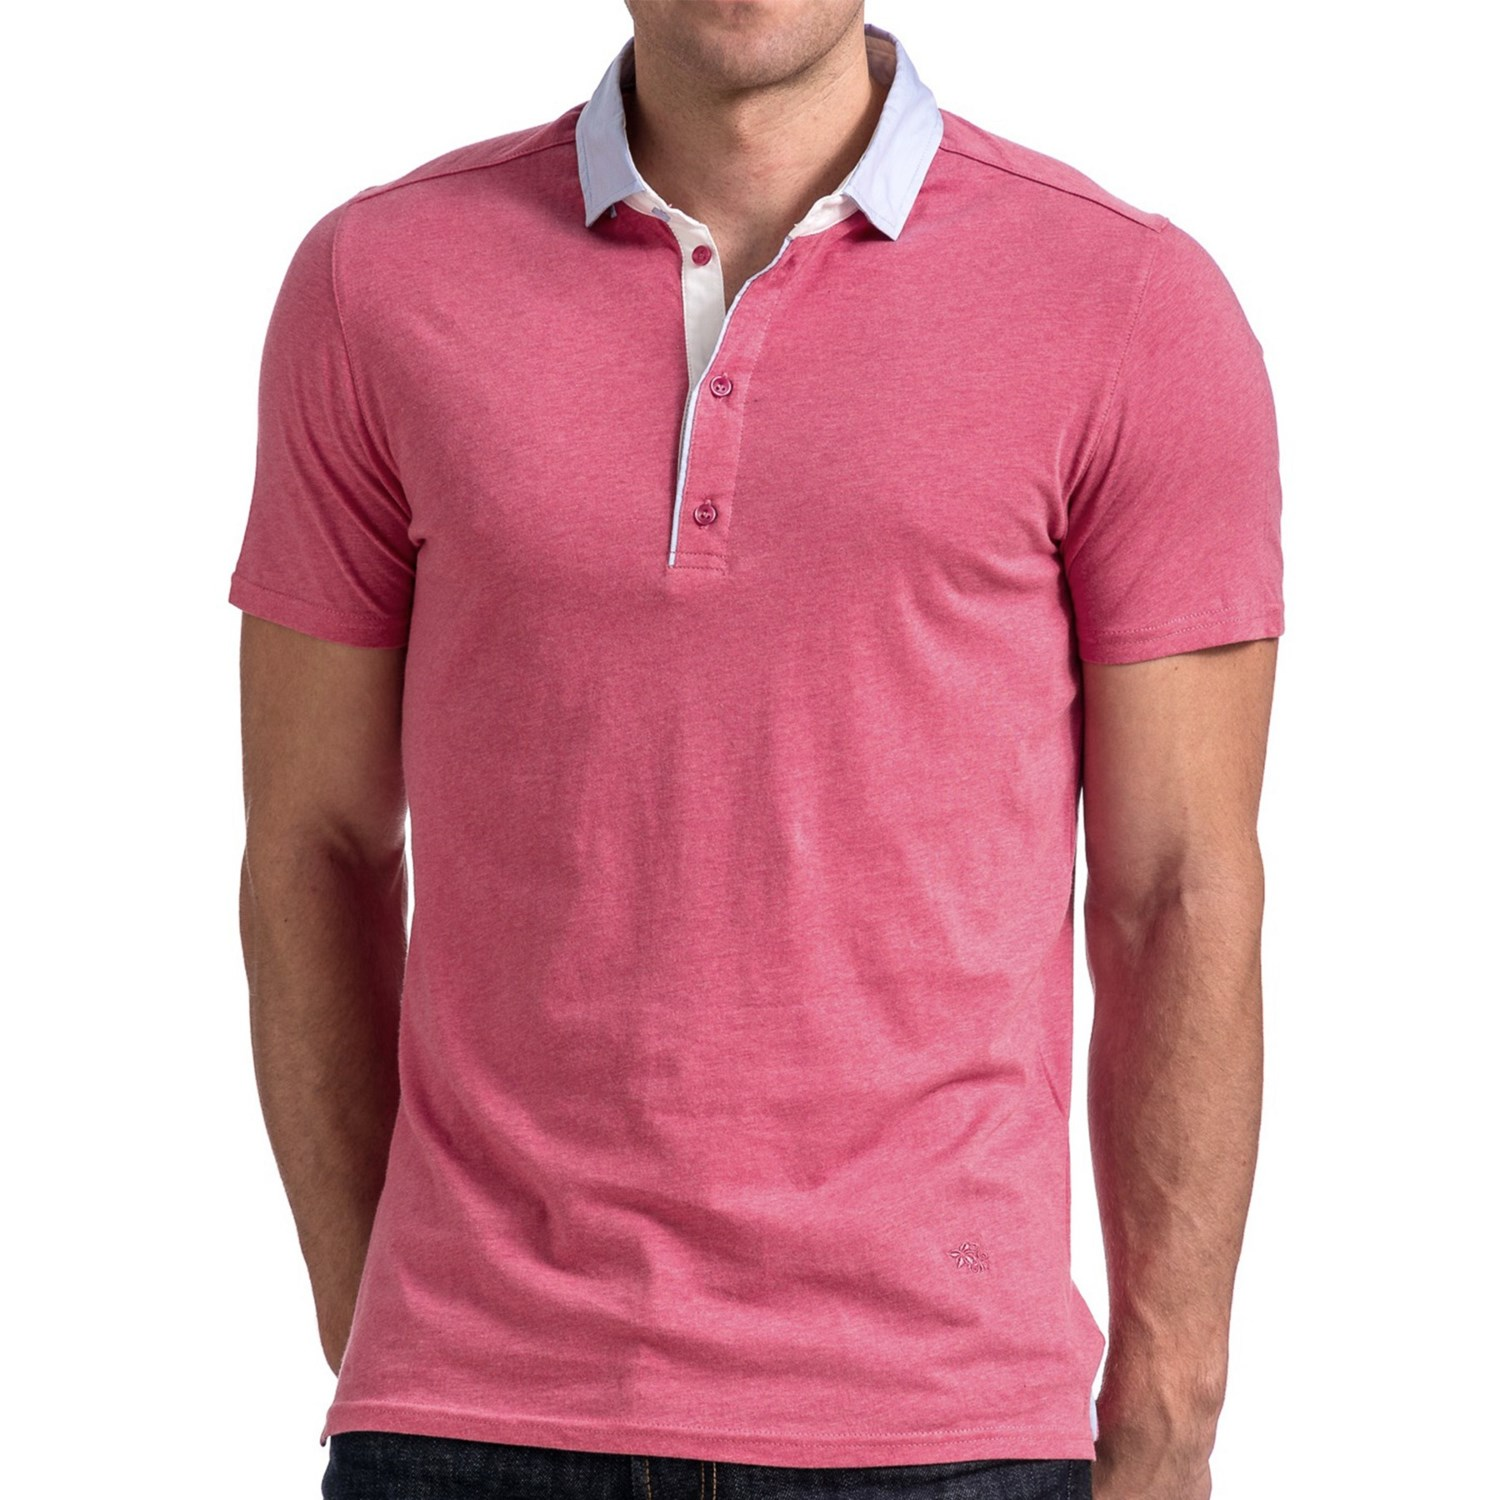 Stone Rose Jersey Knit Polo Shirt For Men 8064v Save 72